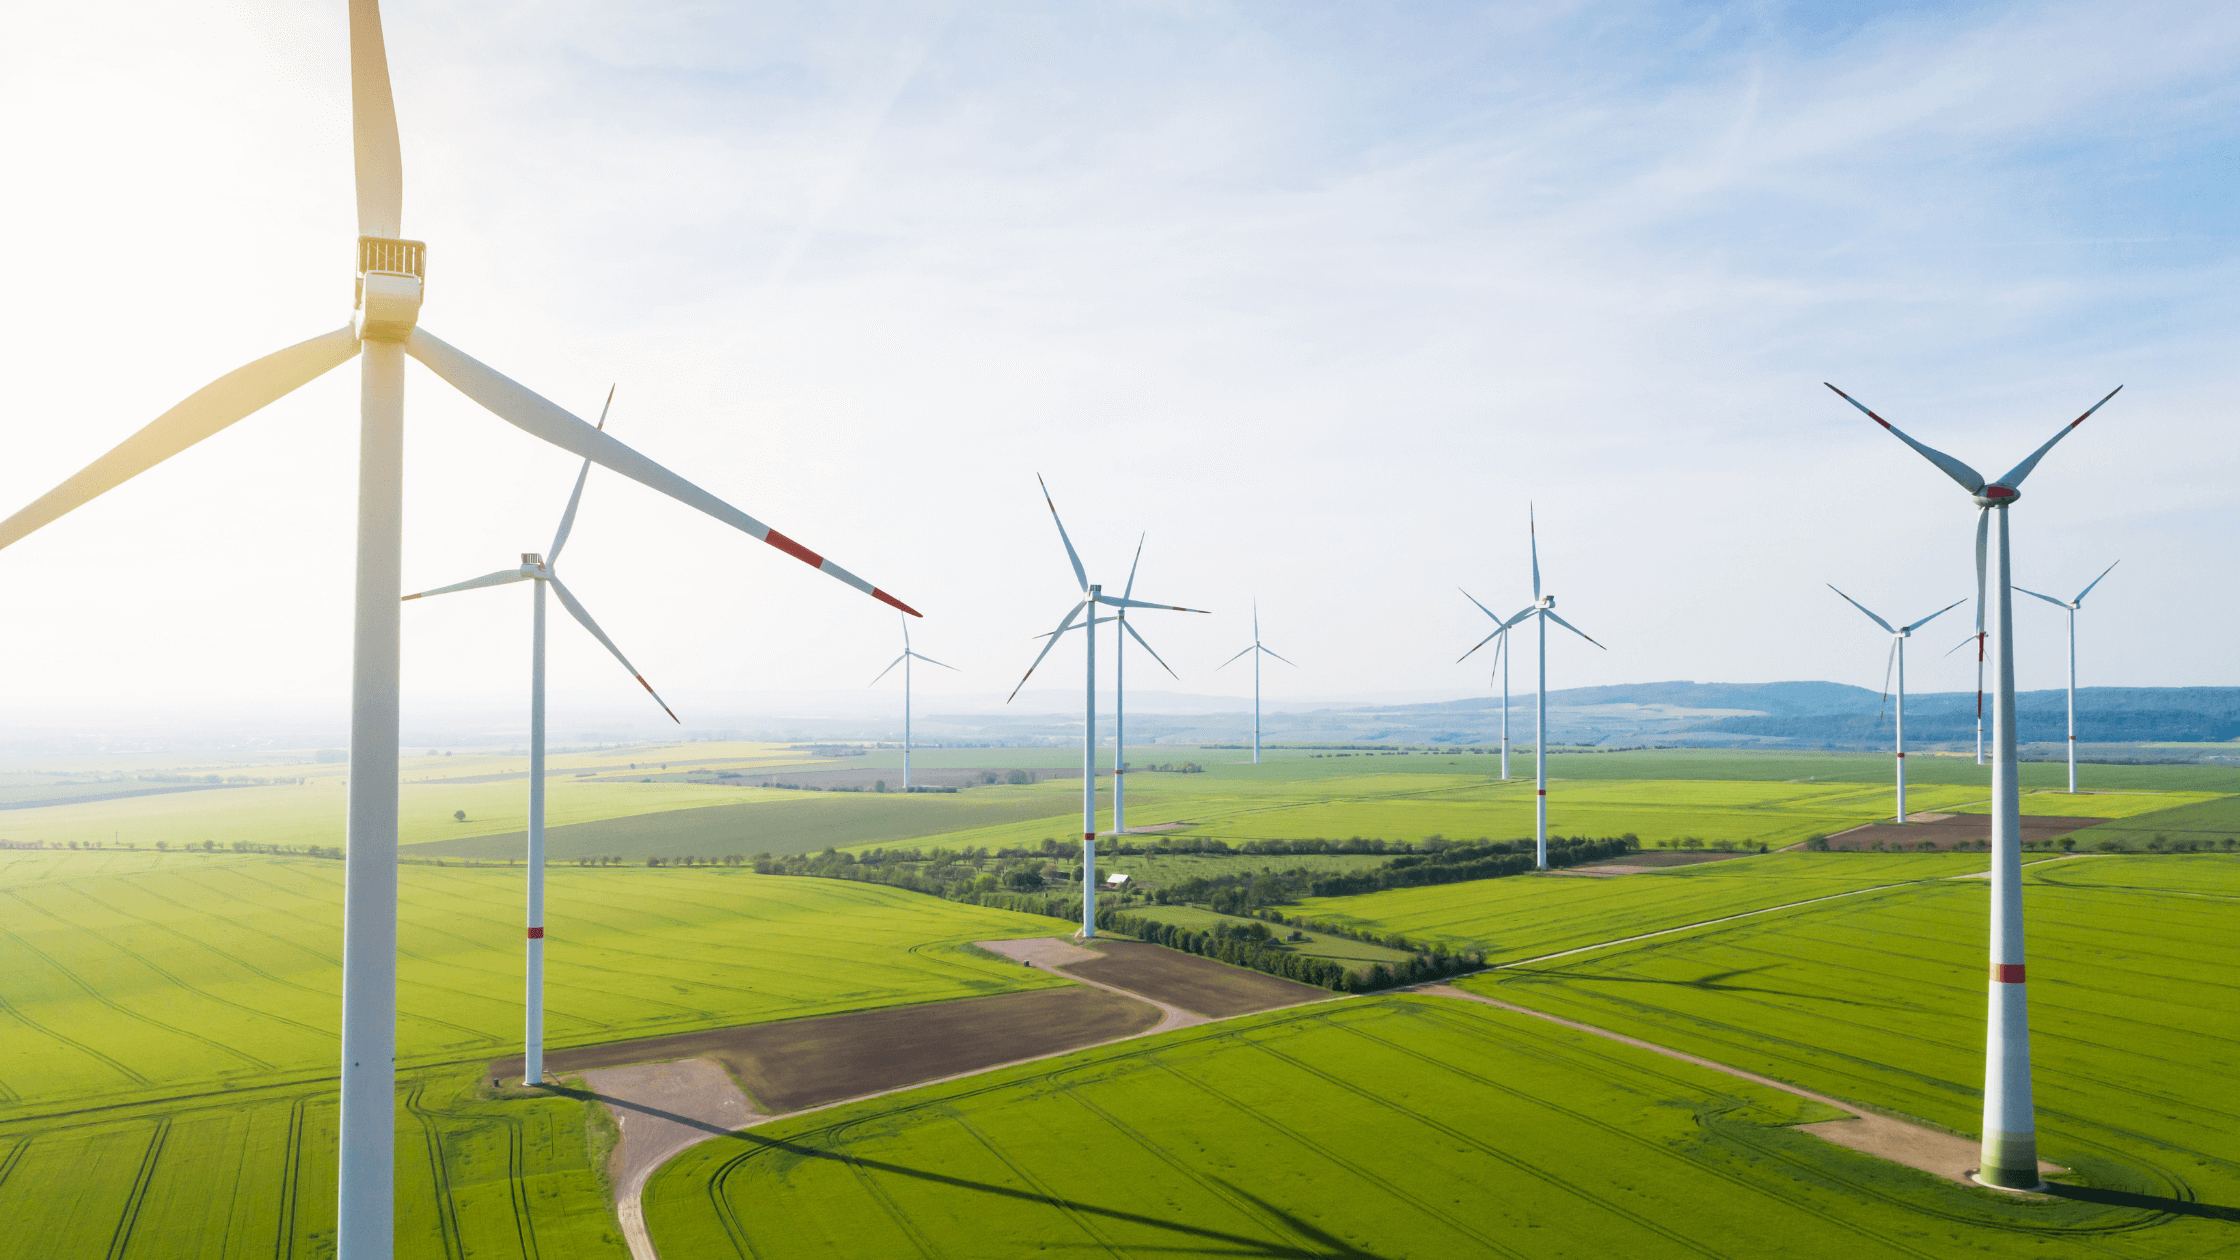 1 Renewable Energy Stock to Buy for Dividends